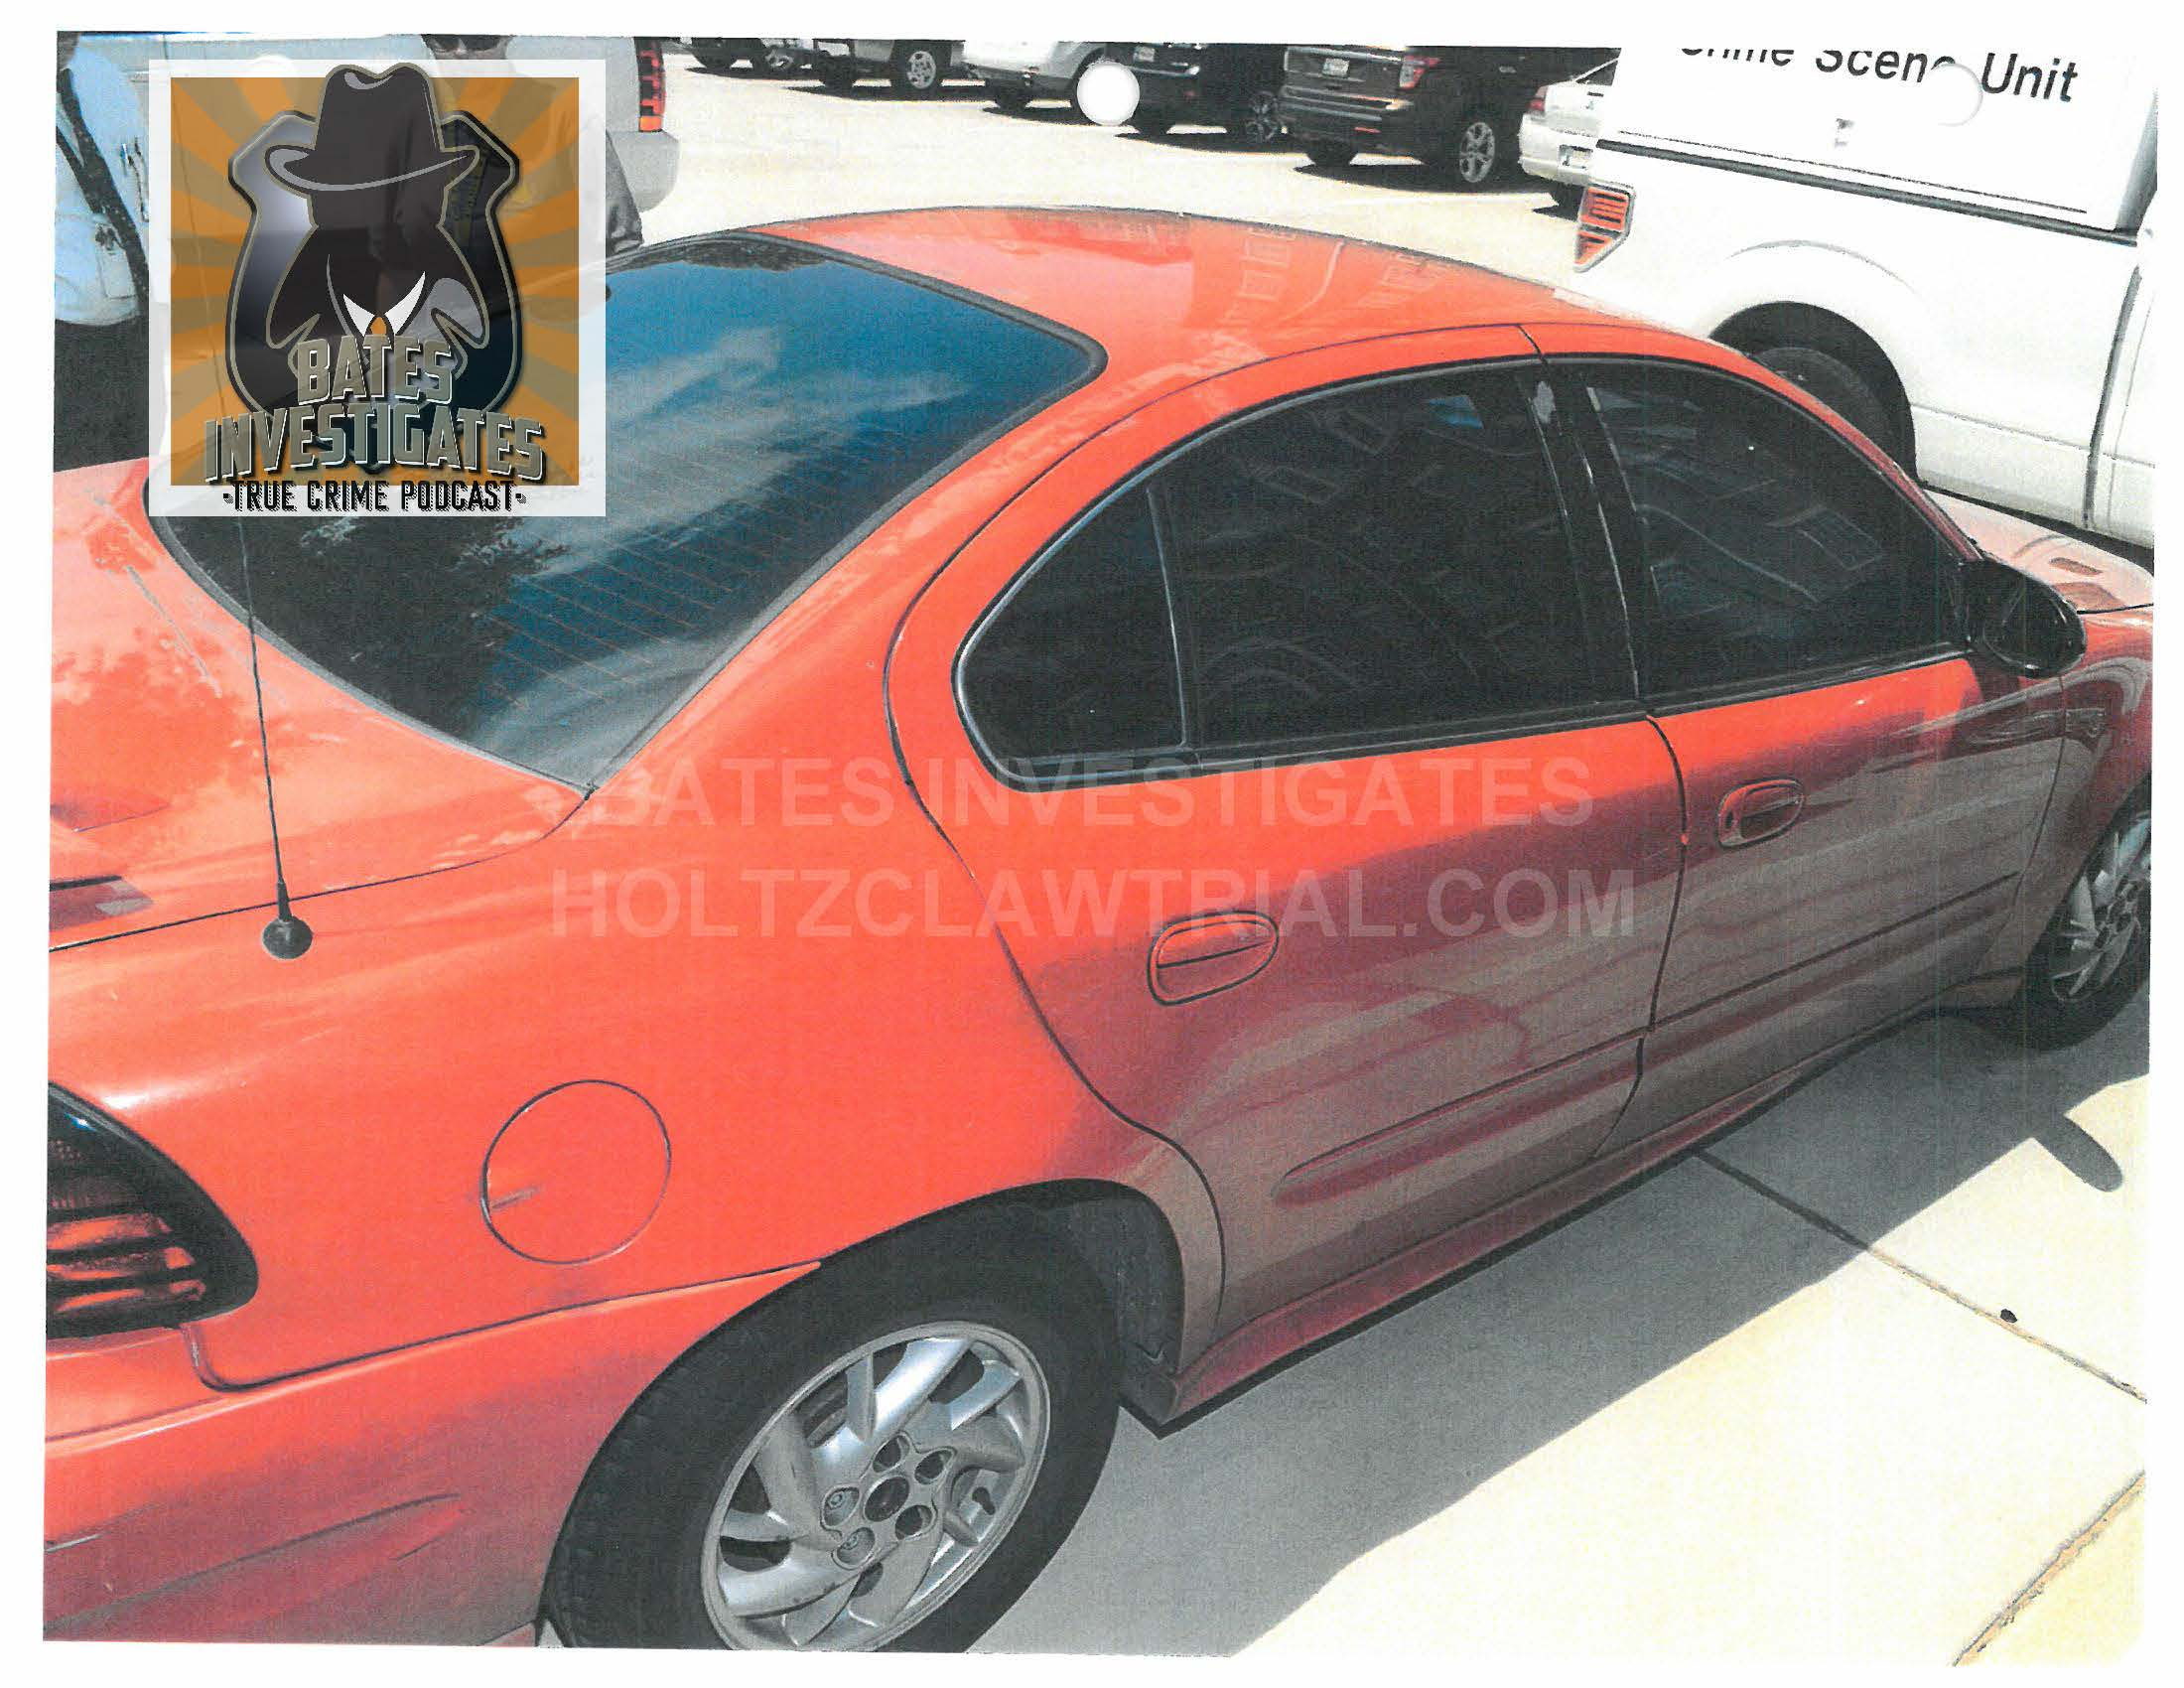 Holtzclaw Podcast Ep02 - Ligons Car - Watermarked_Page_03.jpg